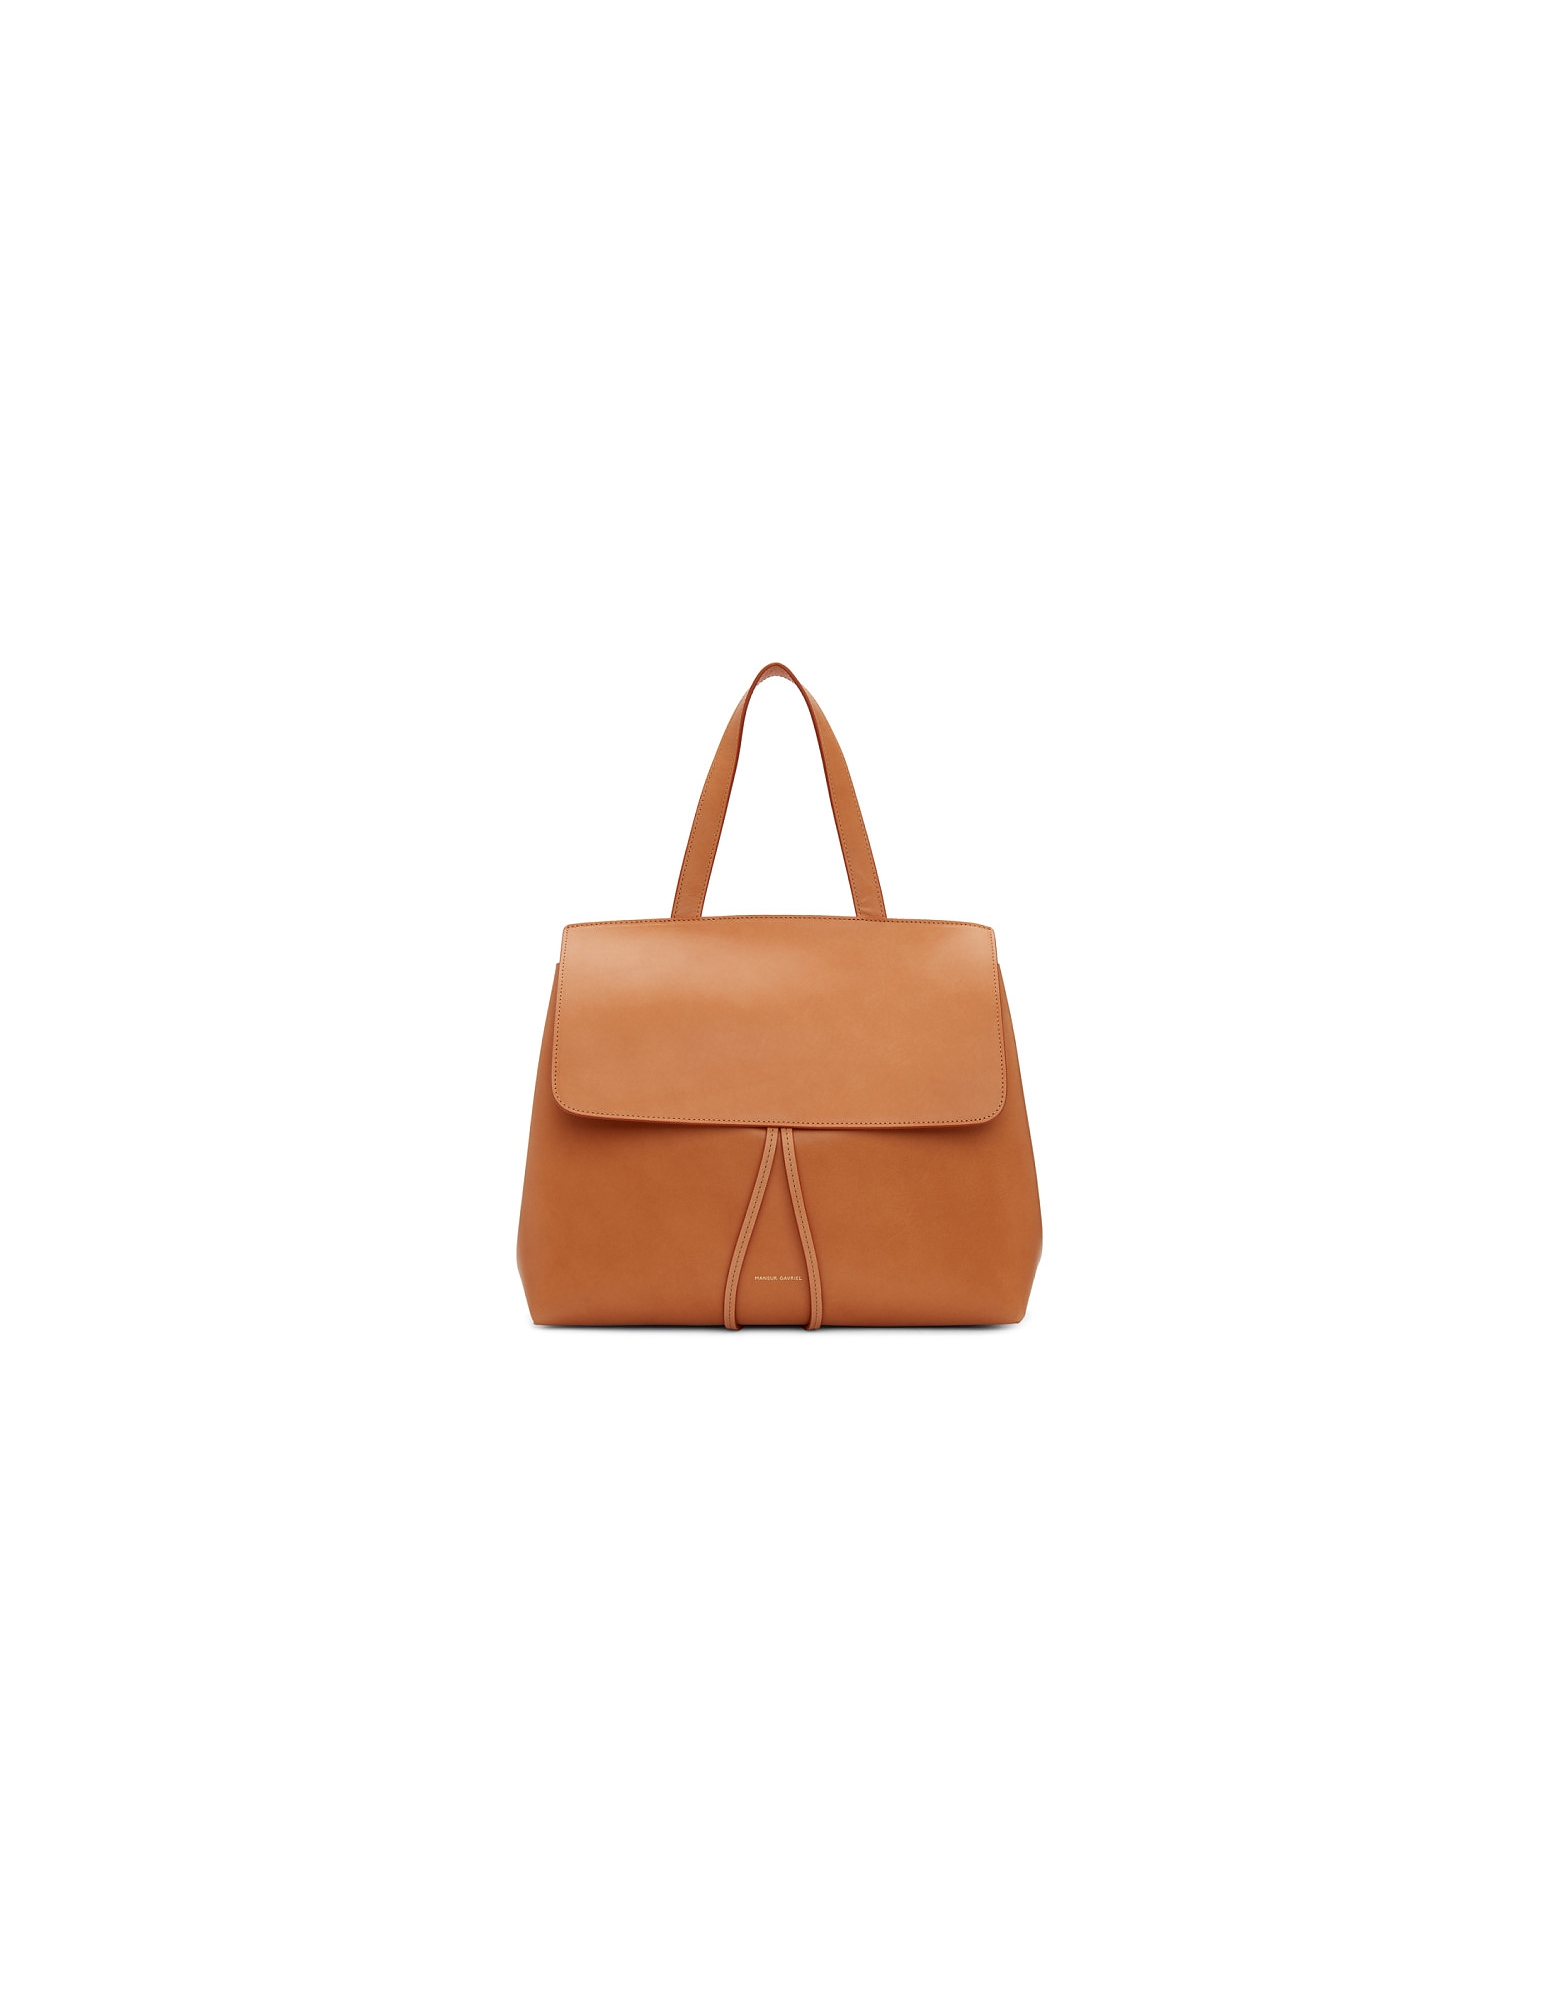 Mansur Gavriel Designer Handbags, Tan Lady Bag